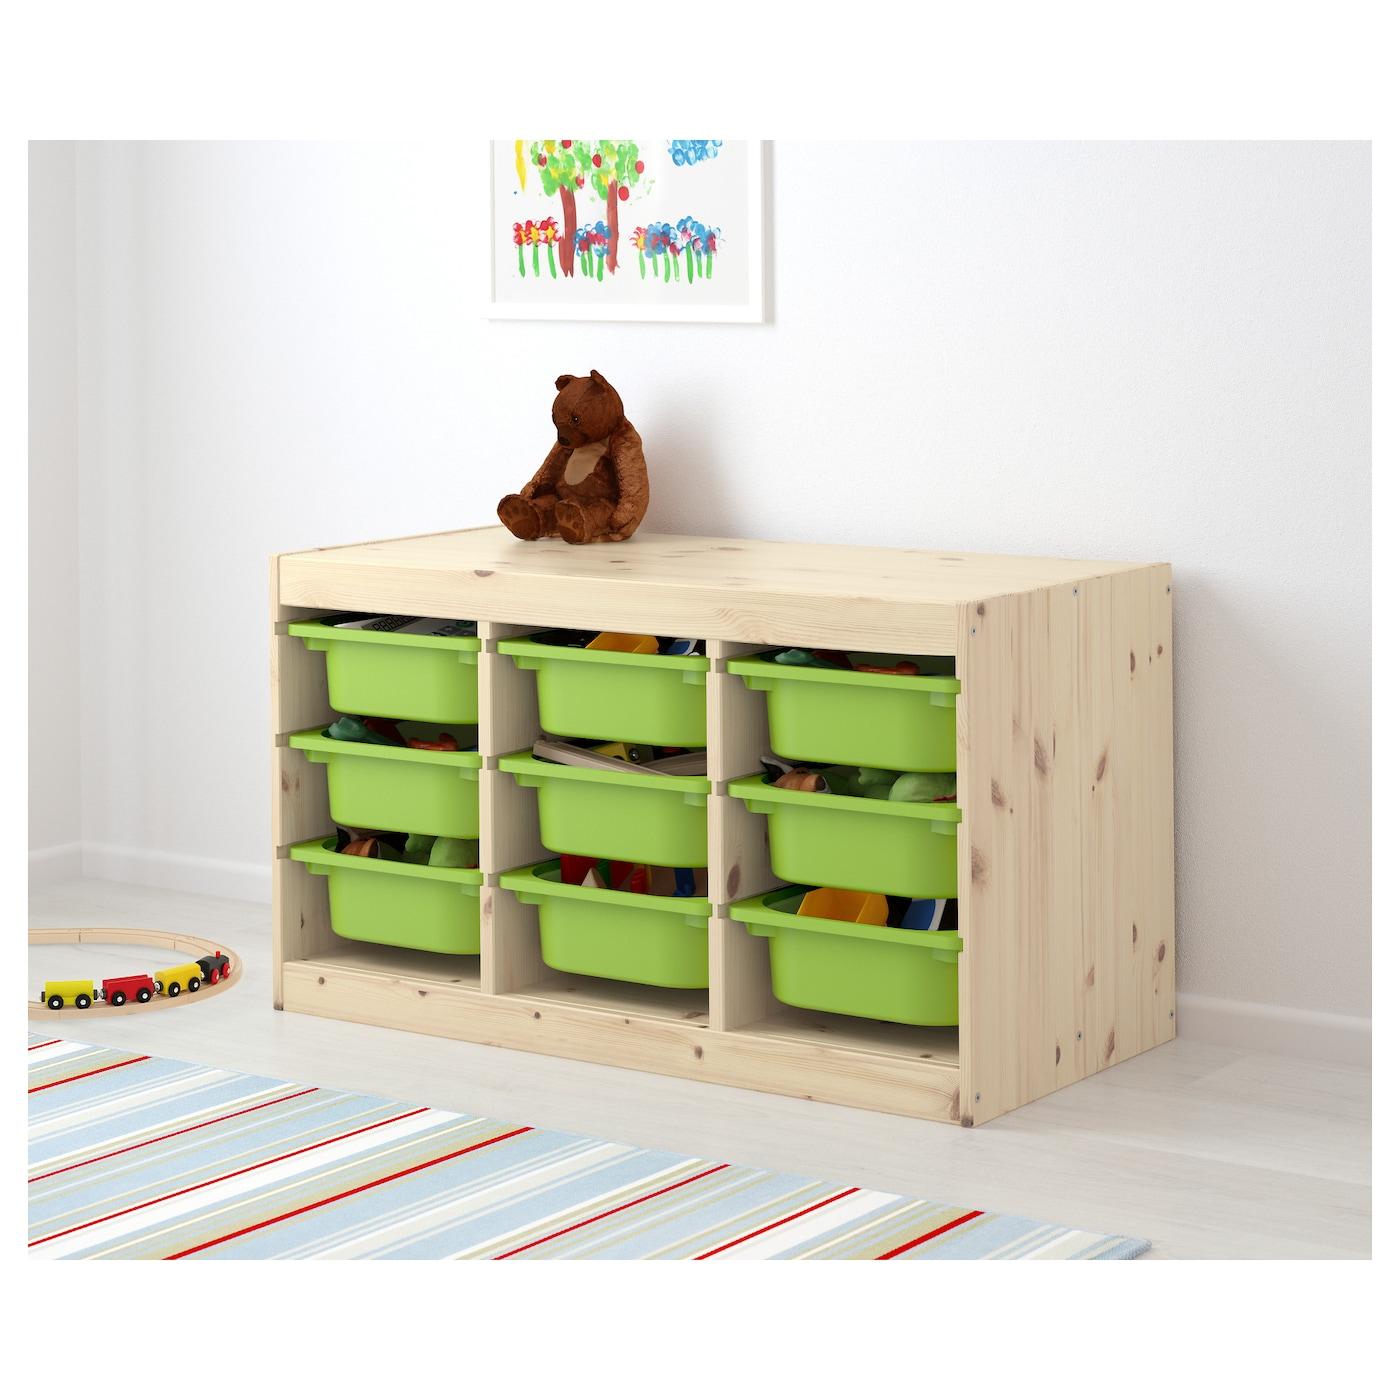 trofast storage combination with boxes light white stained pine green 94 x 44 x 52 cm ikea. Black Bedroom Furniture Sets. Home Design Ideas